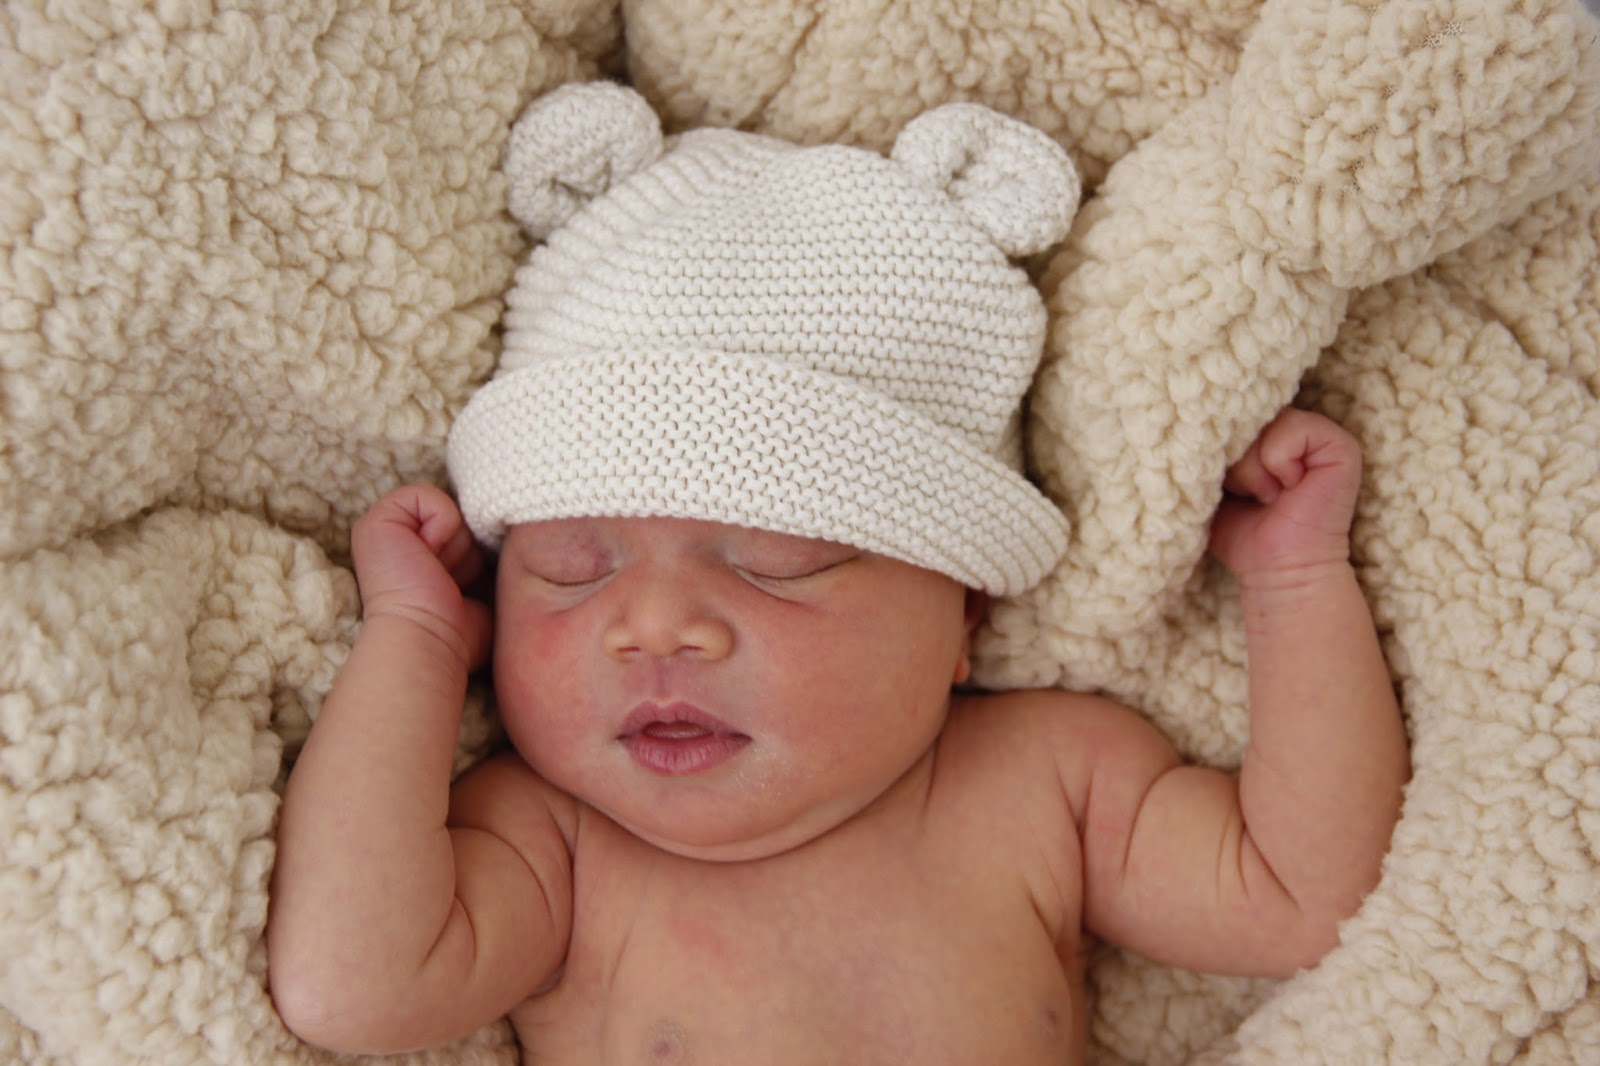 Pinterest gave me the inspiration to take graes newborn pictures they came out great so i wanted to share a few they are unedited she was 4 days old